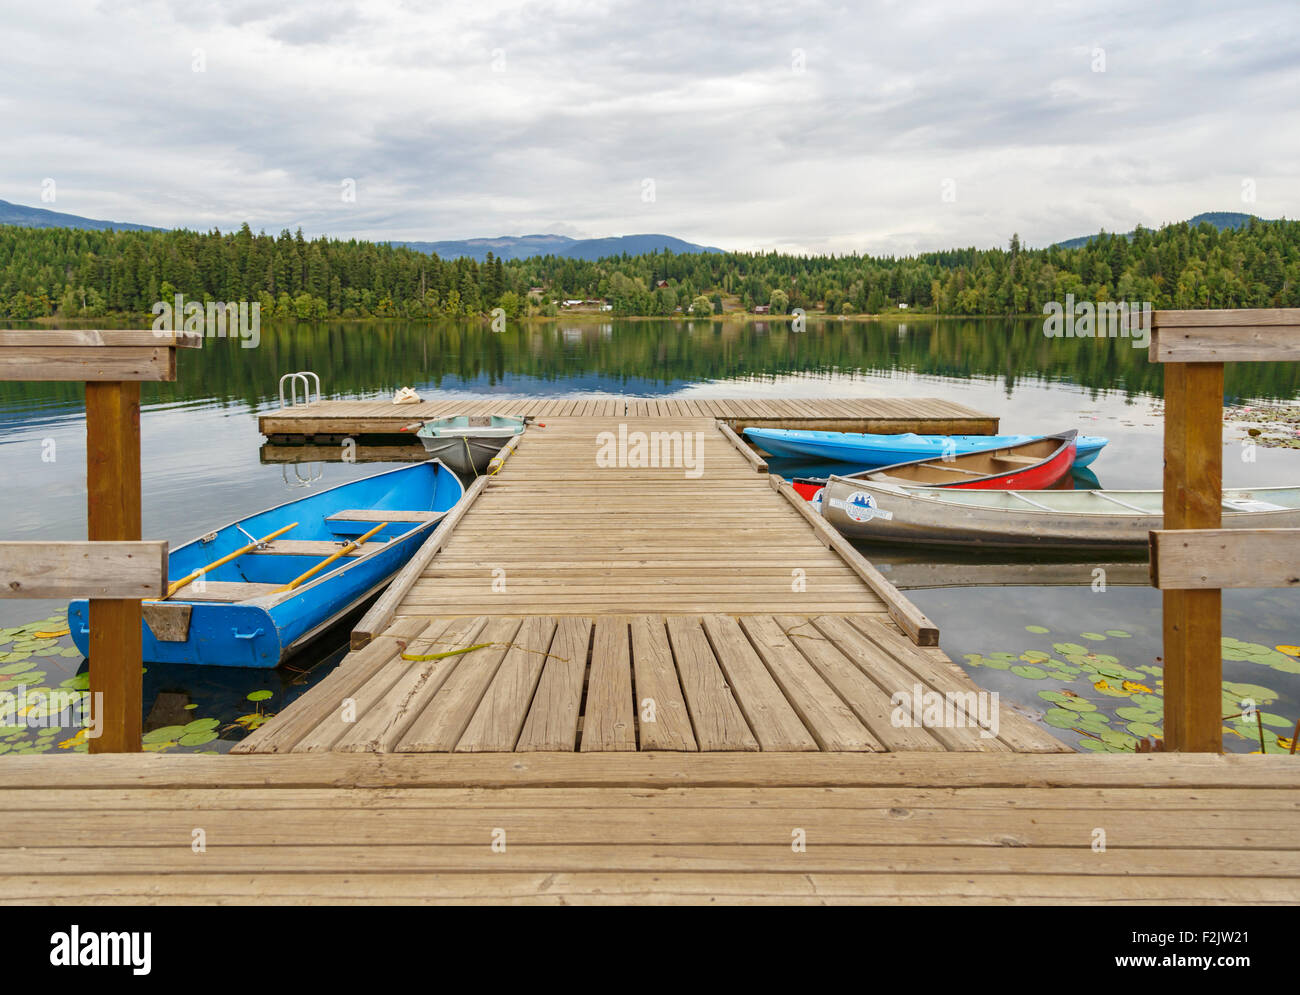 Moored boats and scenic reflections on Dutch Lake in Clearwater, British Columbia, Canada, North America. - Stock Image